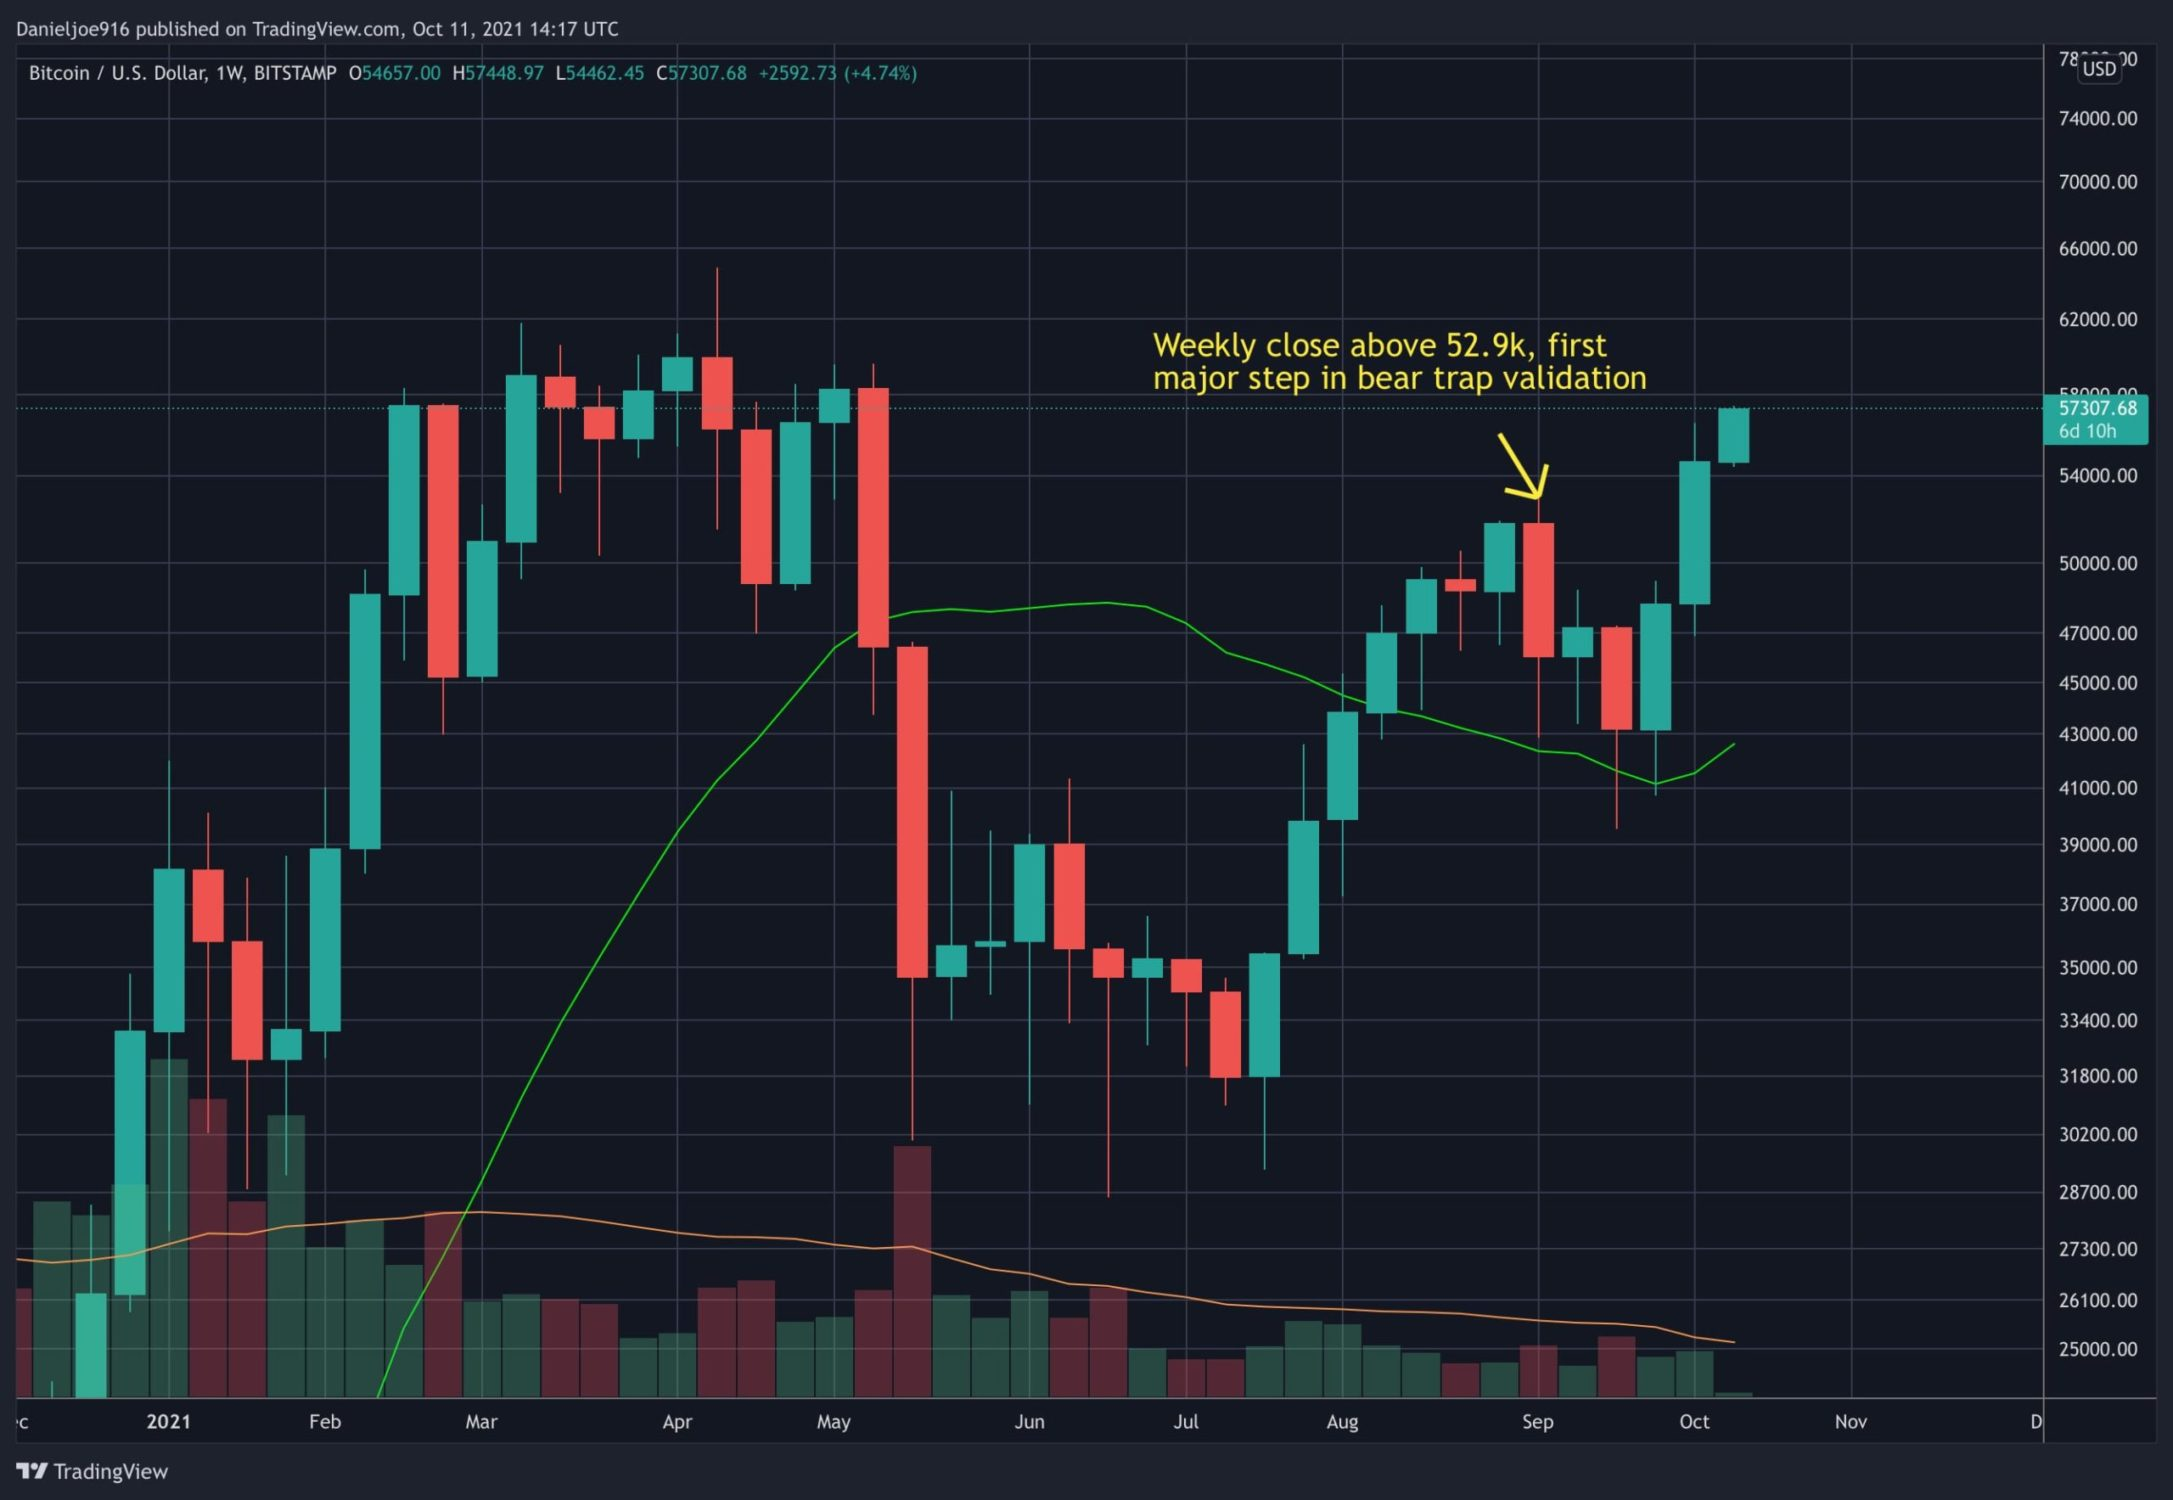 Following Bitcoin's Bullish Weekly Close, These Are the Next Possible Targets (BTC Price Analysis)